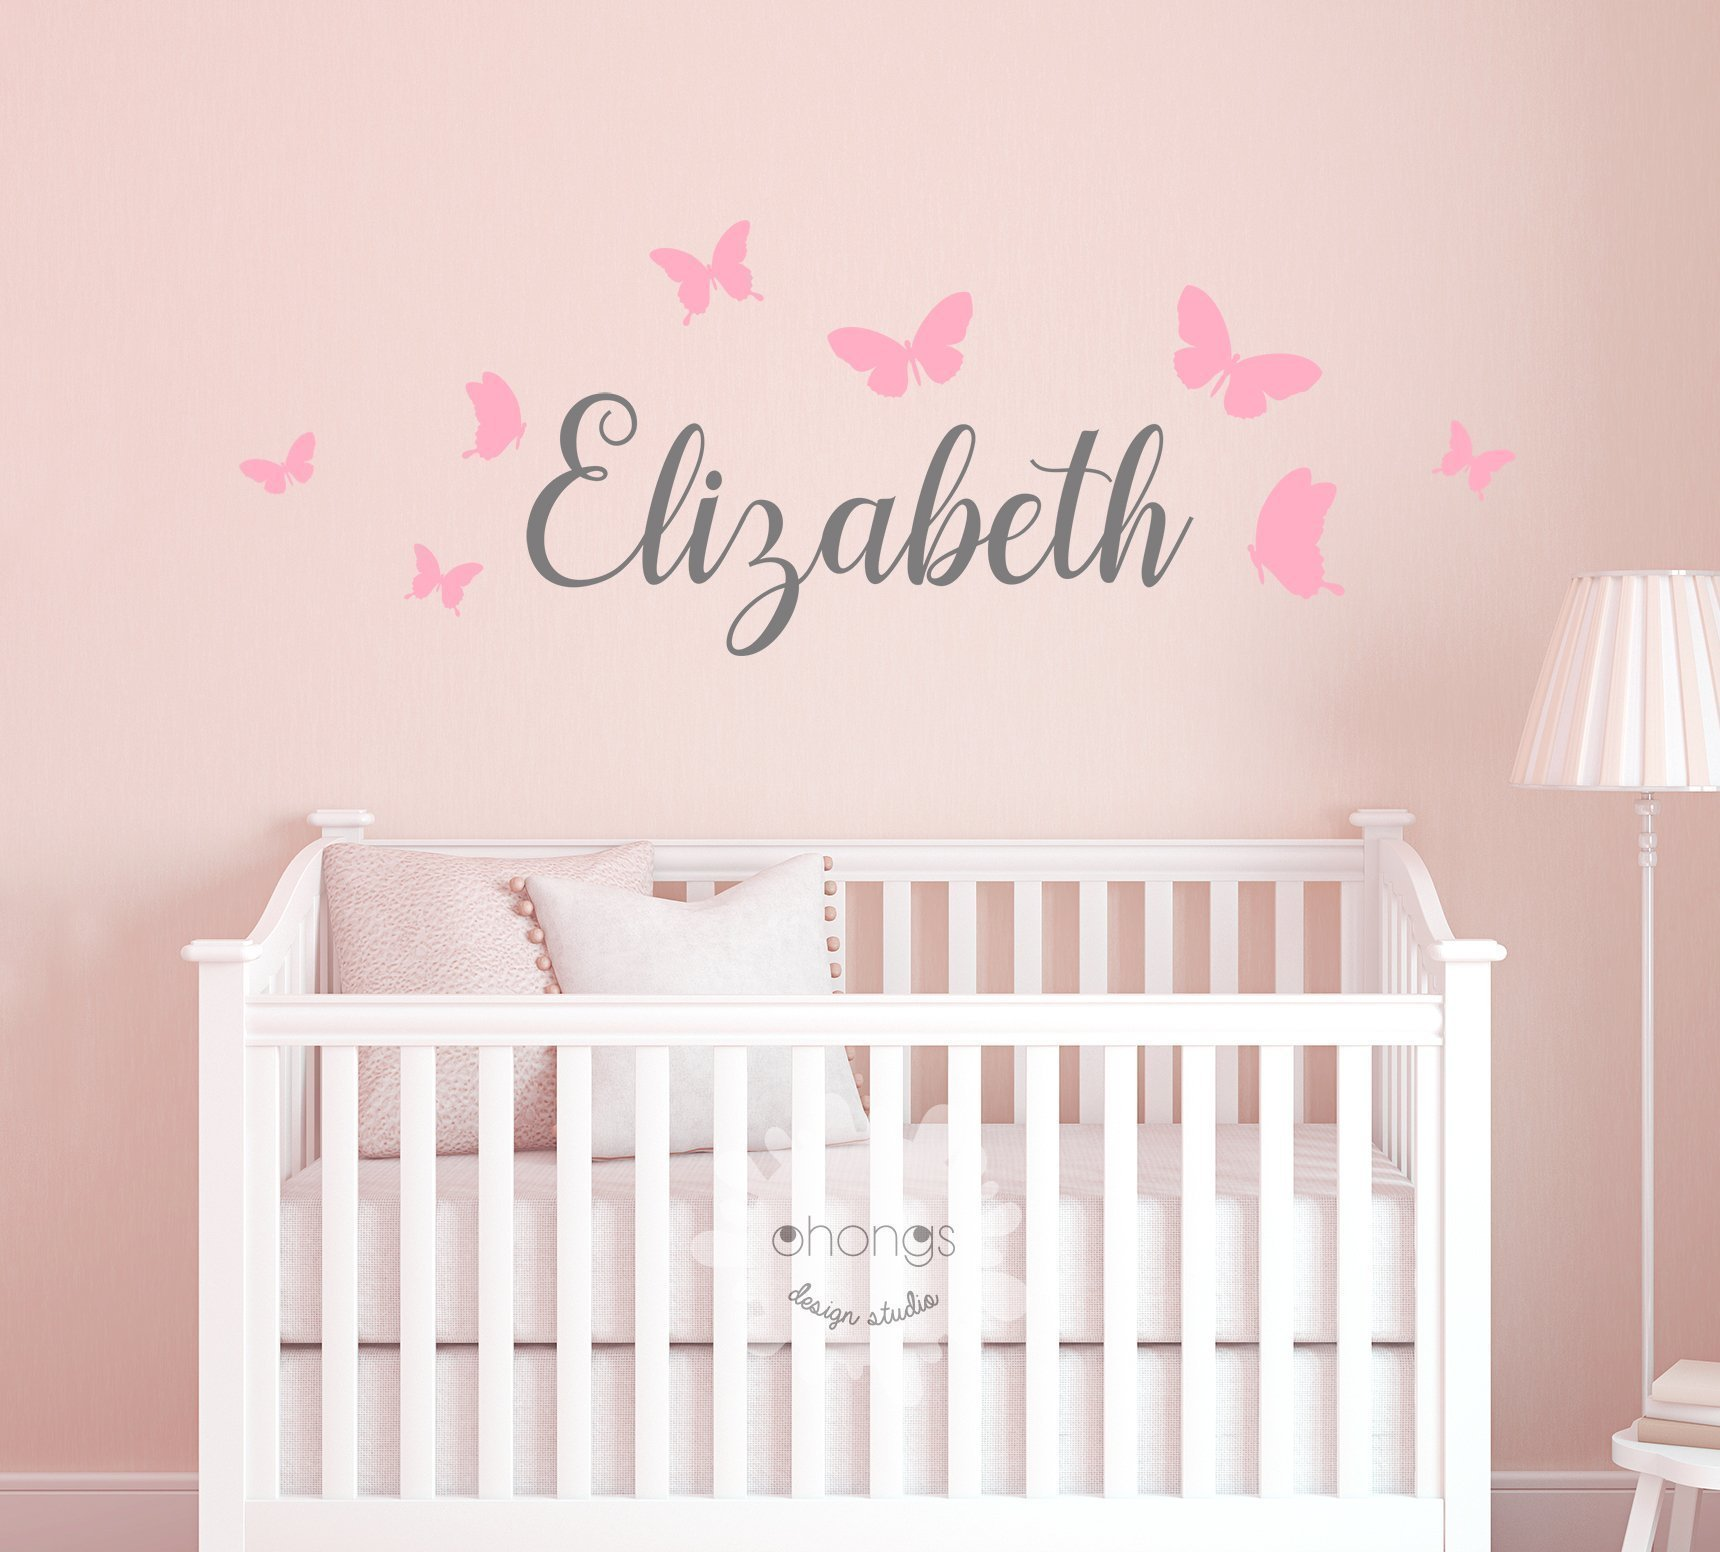 Kids Name Wall Decal/Kids room/Nursery decal/Custom name sticker/Personalized Wall Decal/Baby Name Decal/butterfly name by Ohongs Design Studio